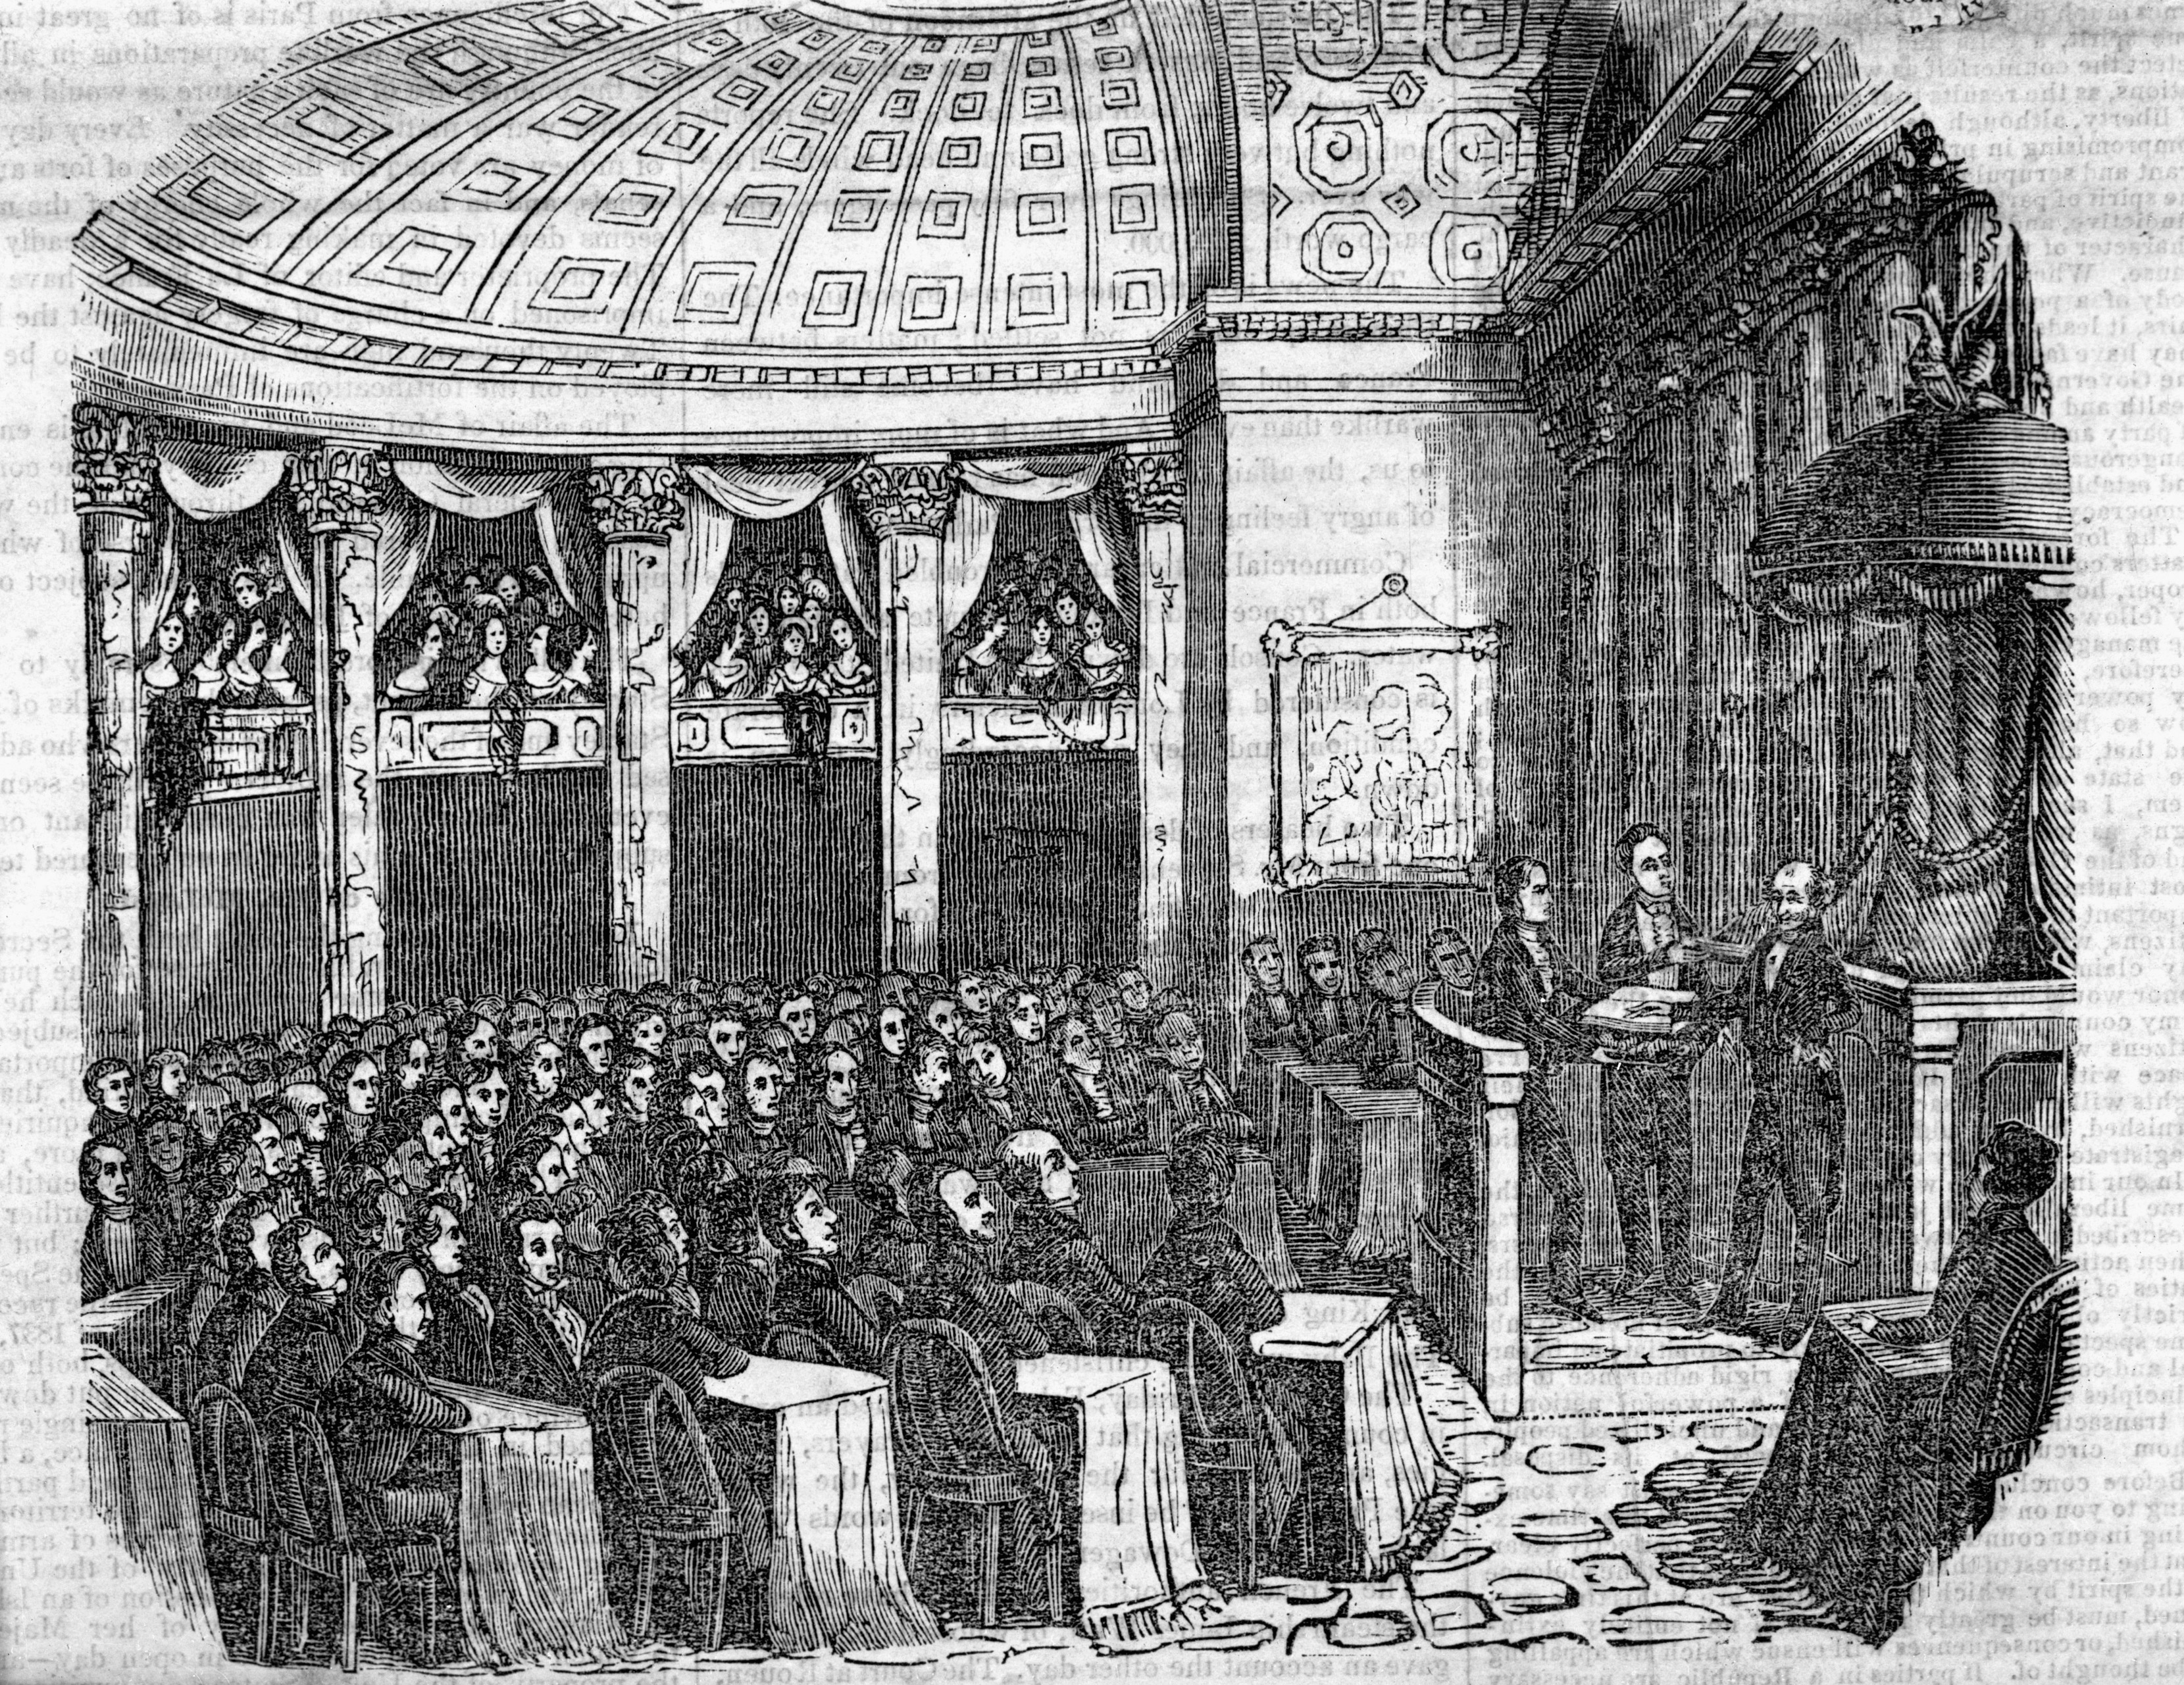 Inauguration of Martin Van Buren in the Senate Chamber, March 4, 1837.